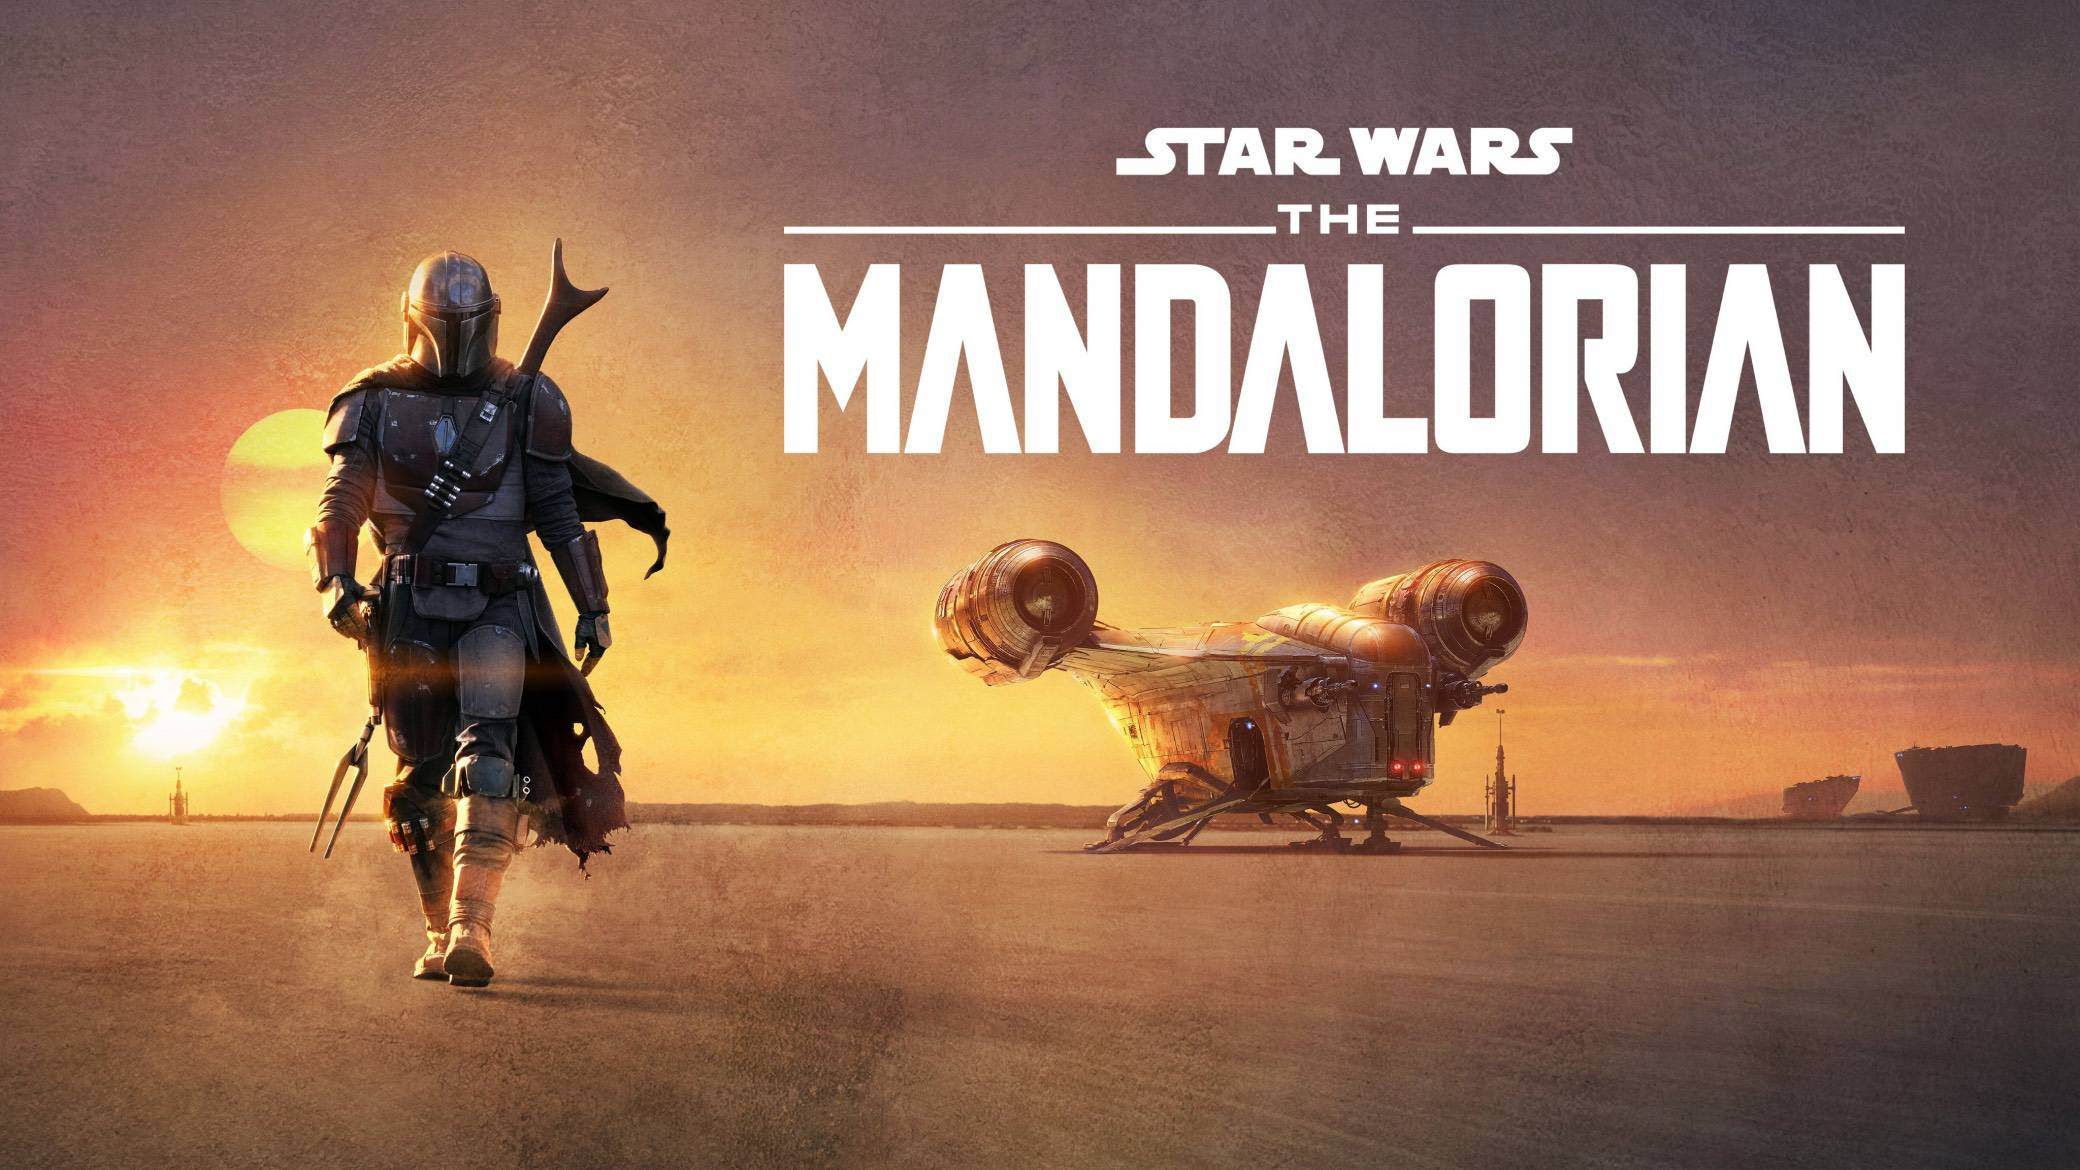 the-mandalorian image